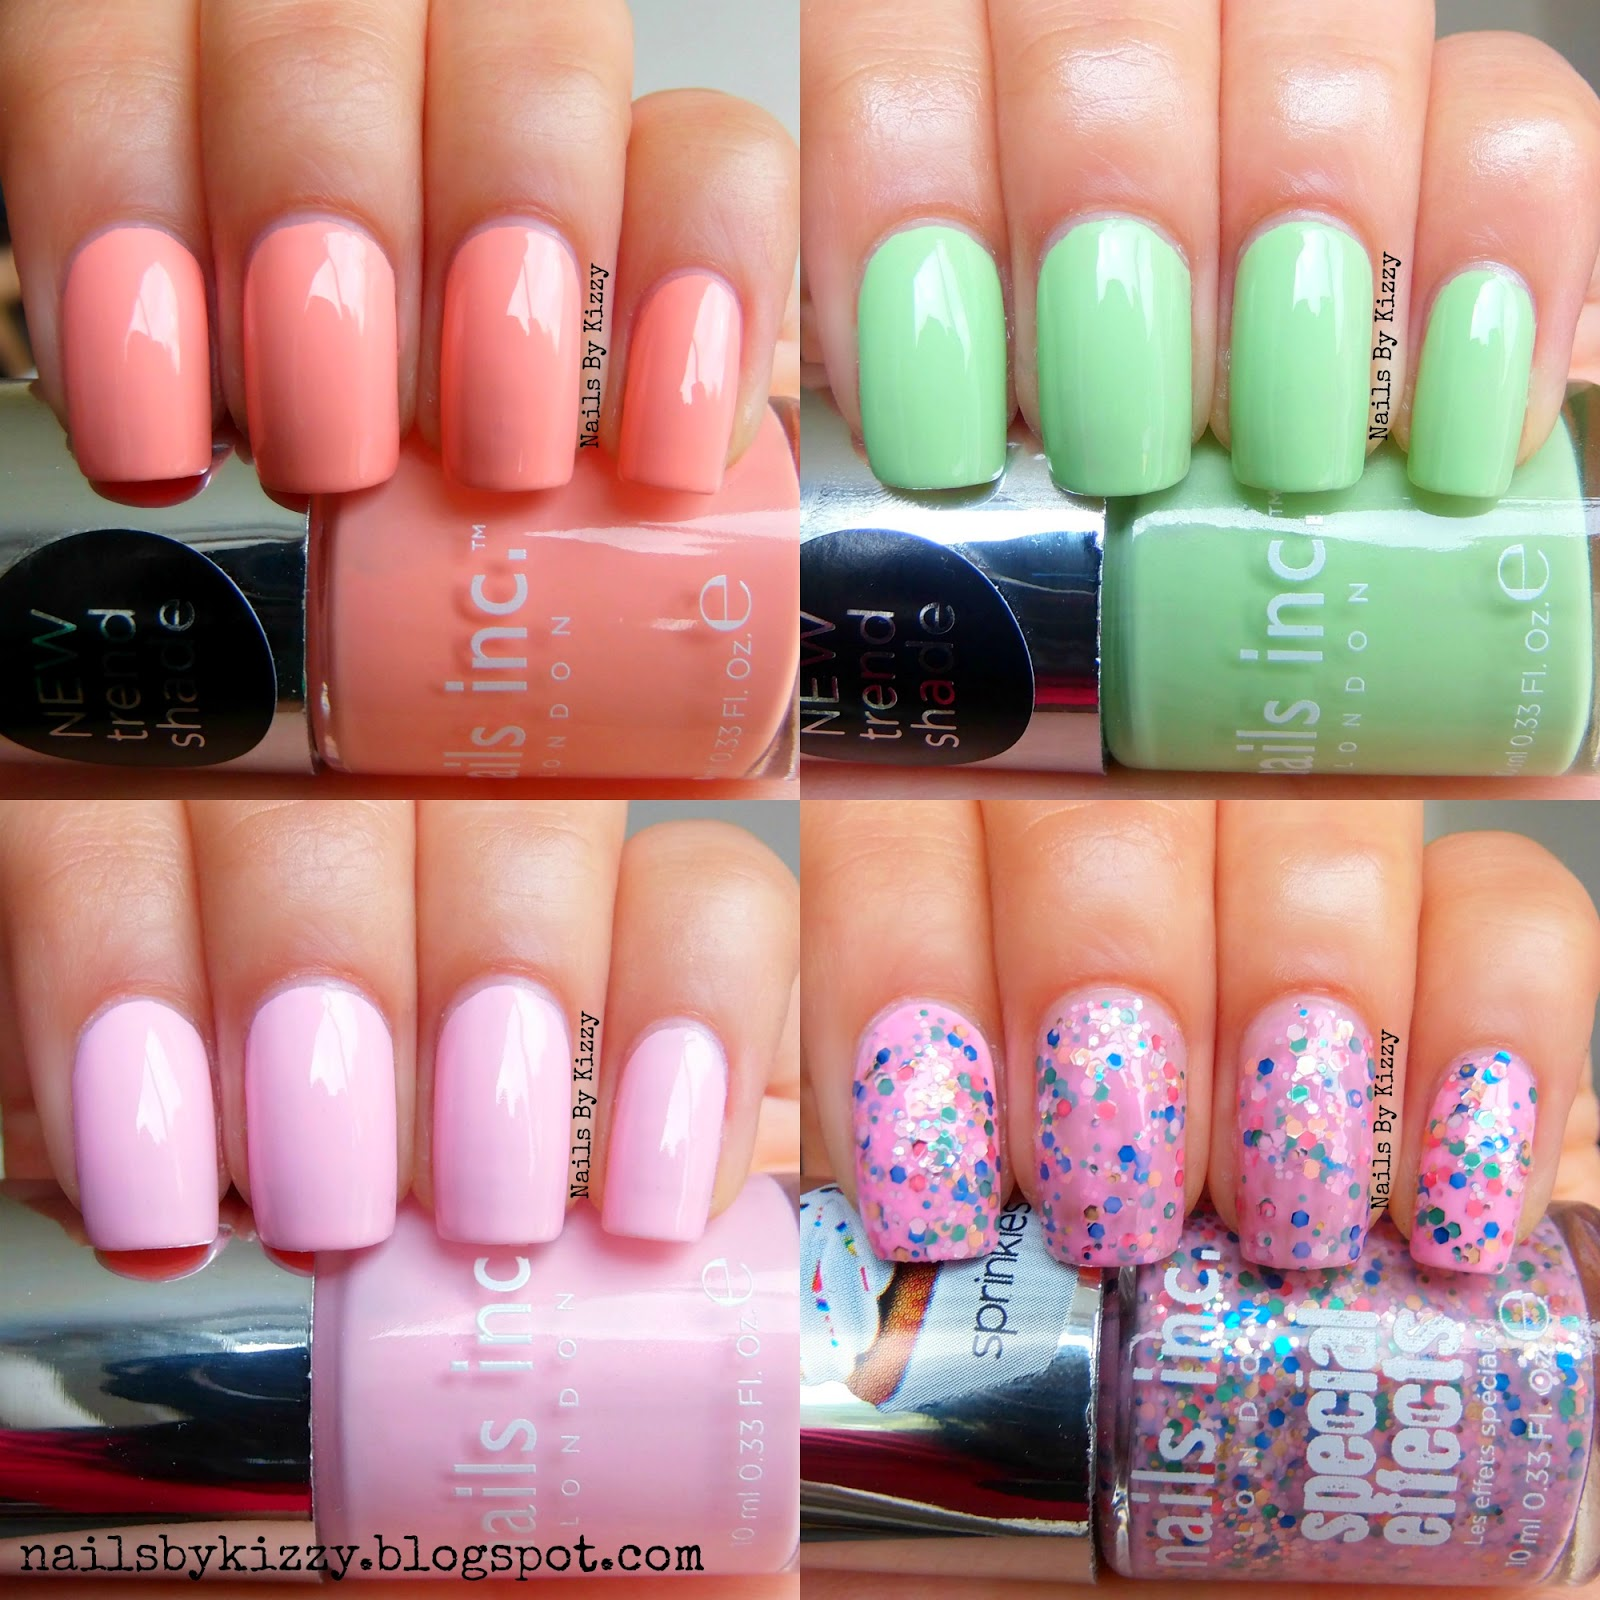 The Collection Came With 8 Full Size Nails Inc Polishes And It Only Cost GBP20 Colours Are So Perfect For Spring Summer